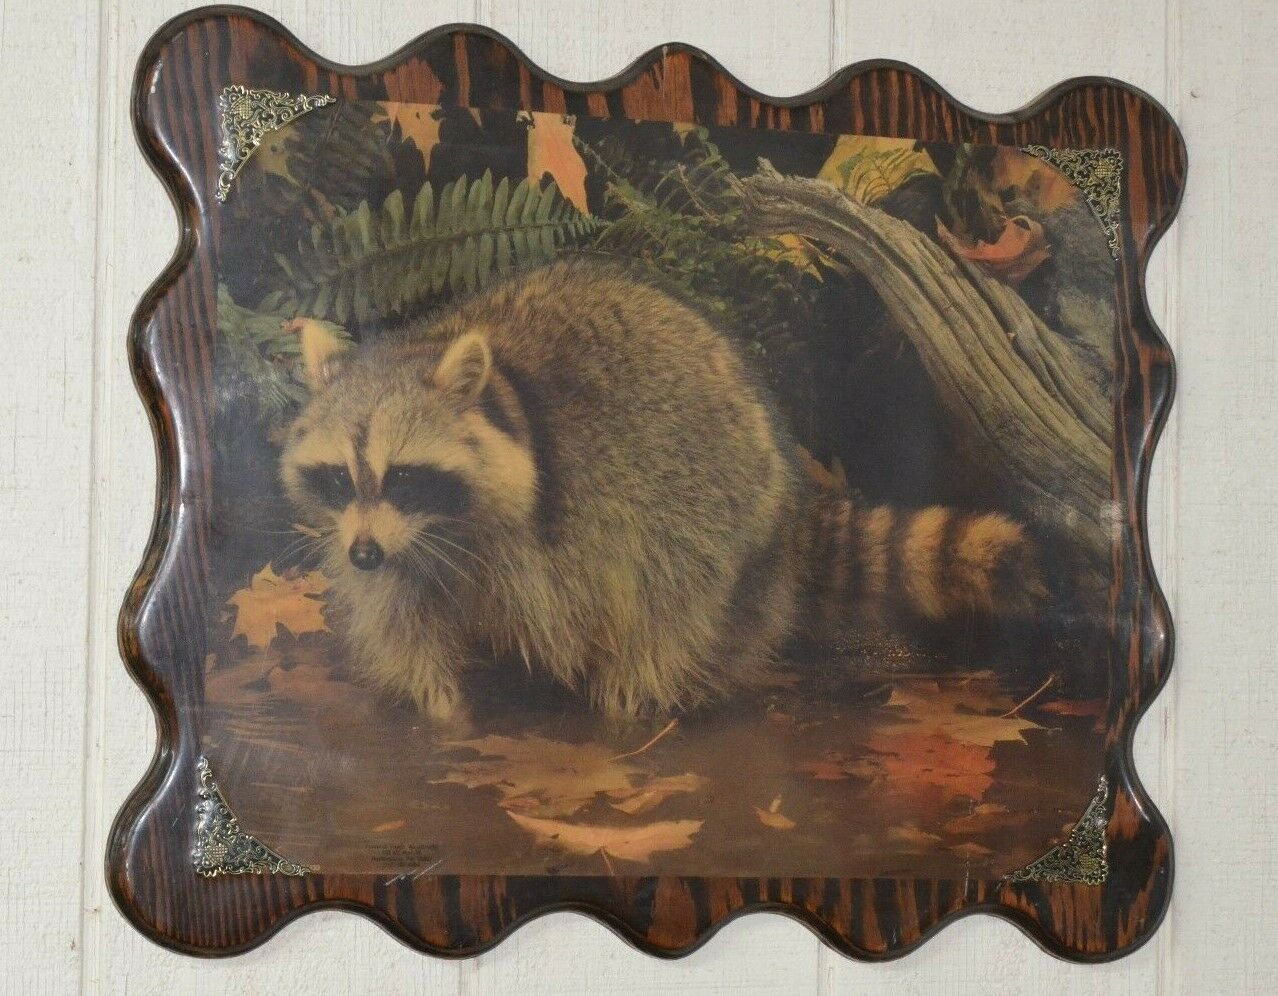 Vintage Raccoon Nature Picture Wood Plaque Rustic Decor Cabin Hunting Lodge Wall